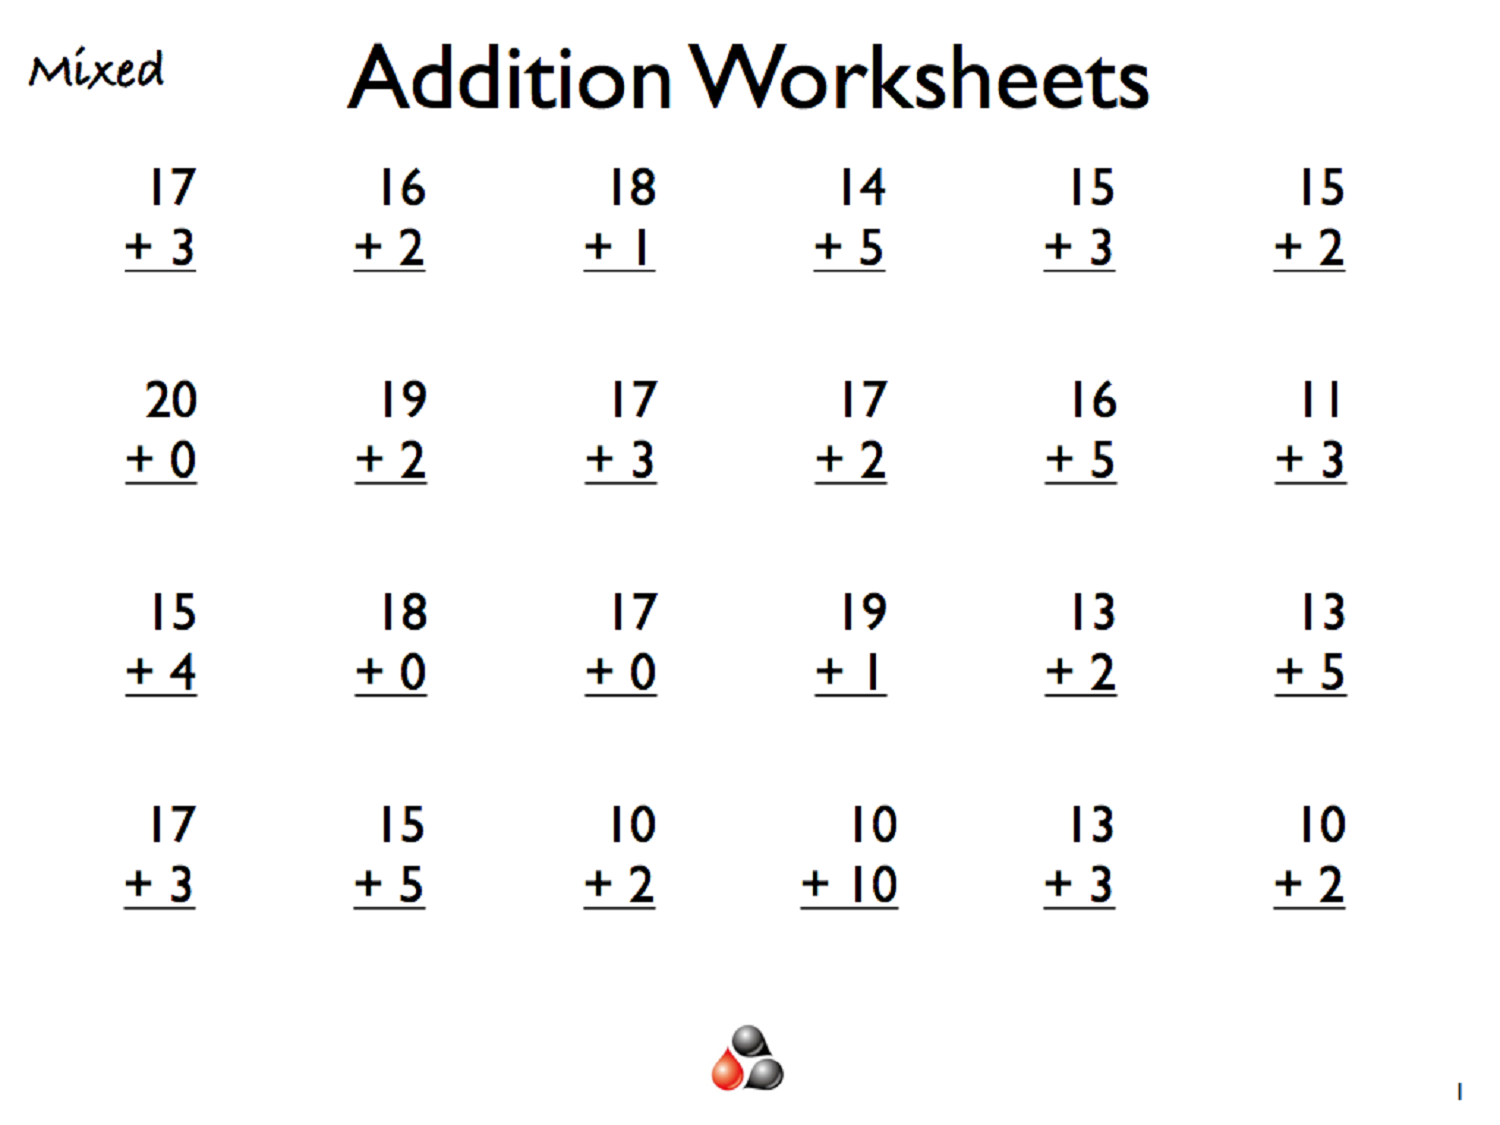 Worksheet Addition Problems For 1st Grade 1000 images about kids activity math on pinterest practices sheets and number worksheets